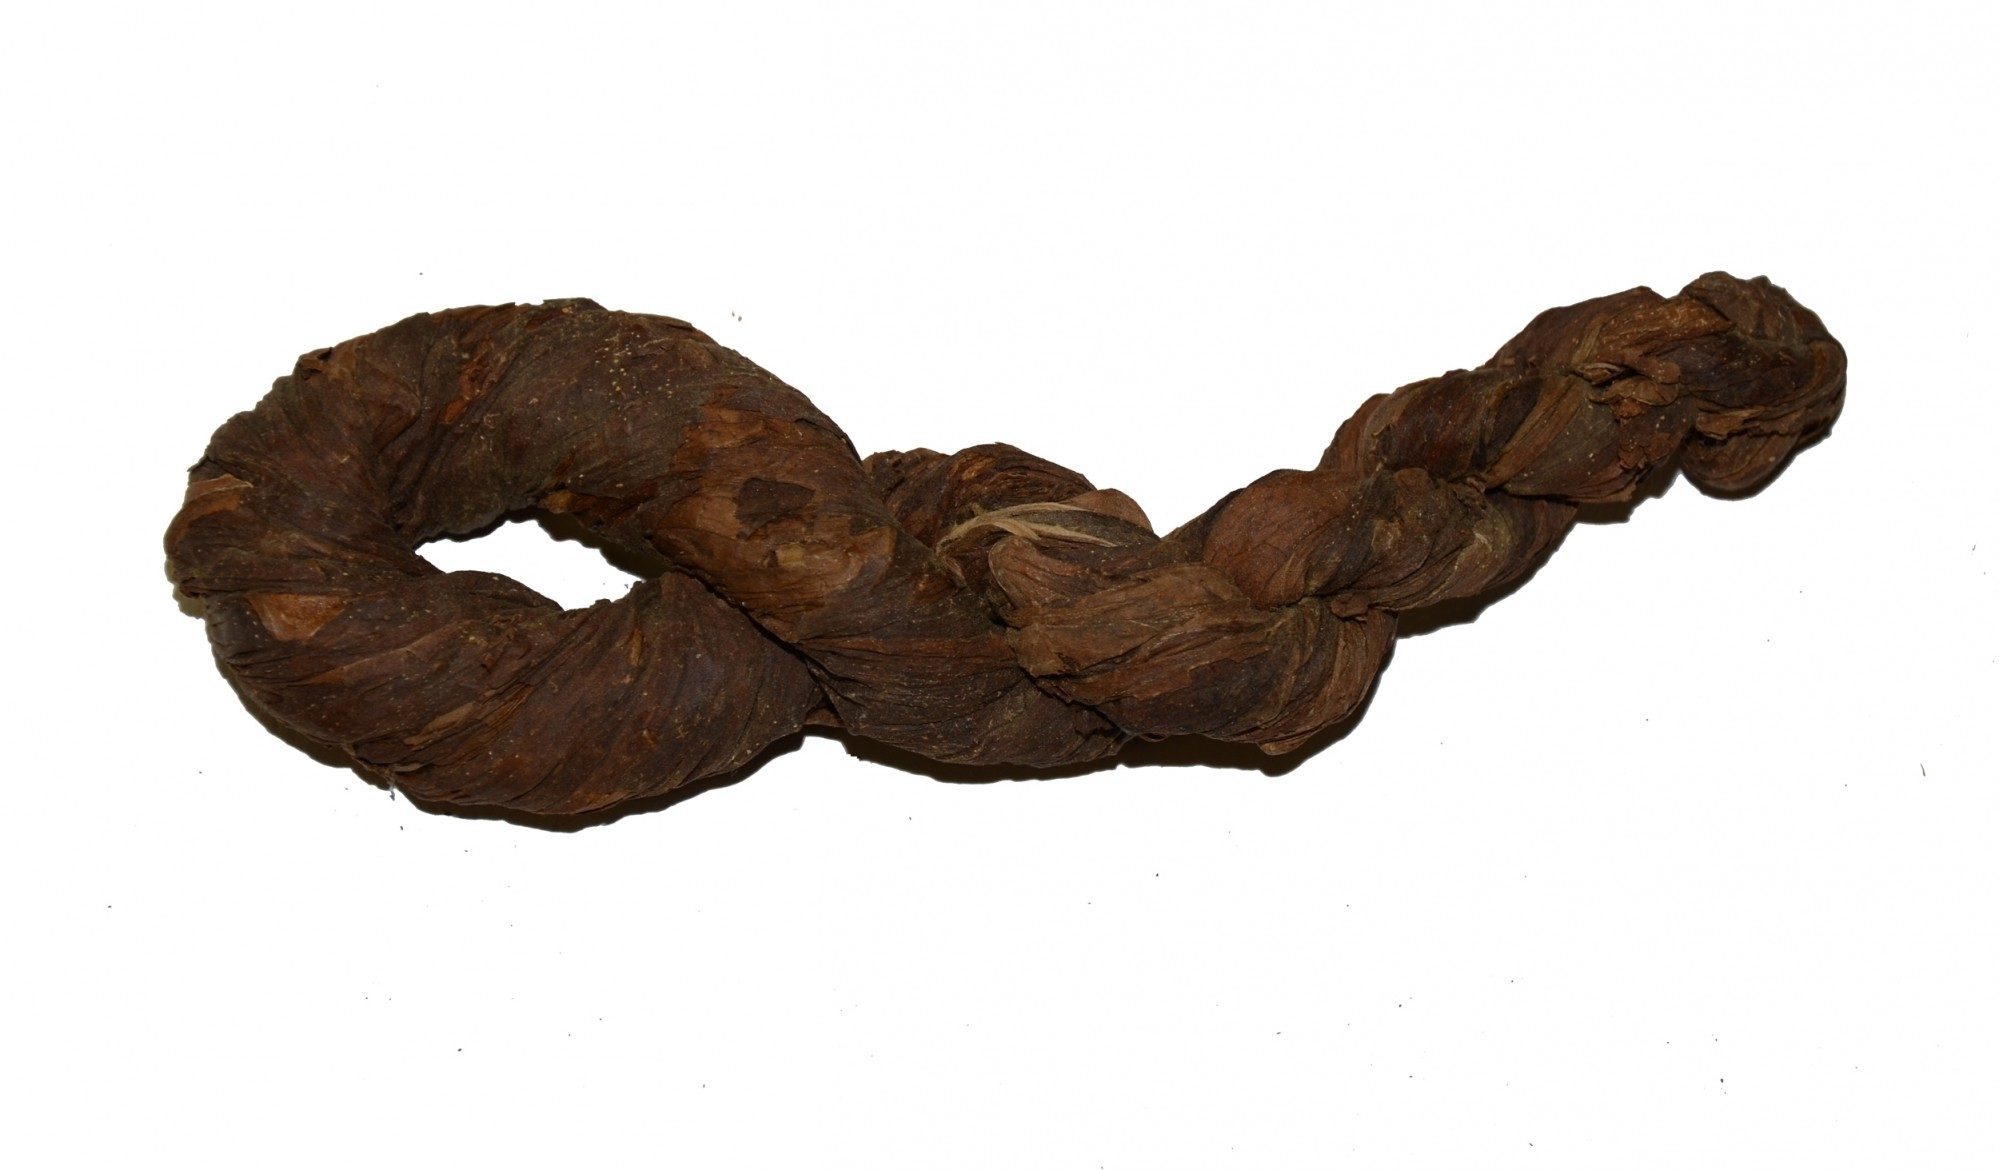 CIVIL WAR PERIOD TOBACCO TWIST